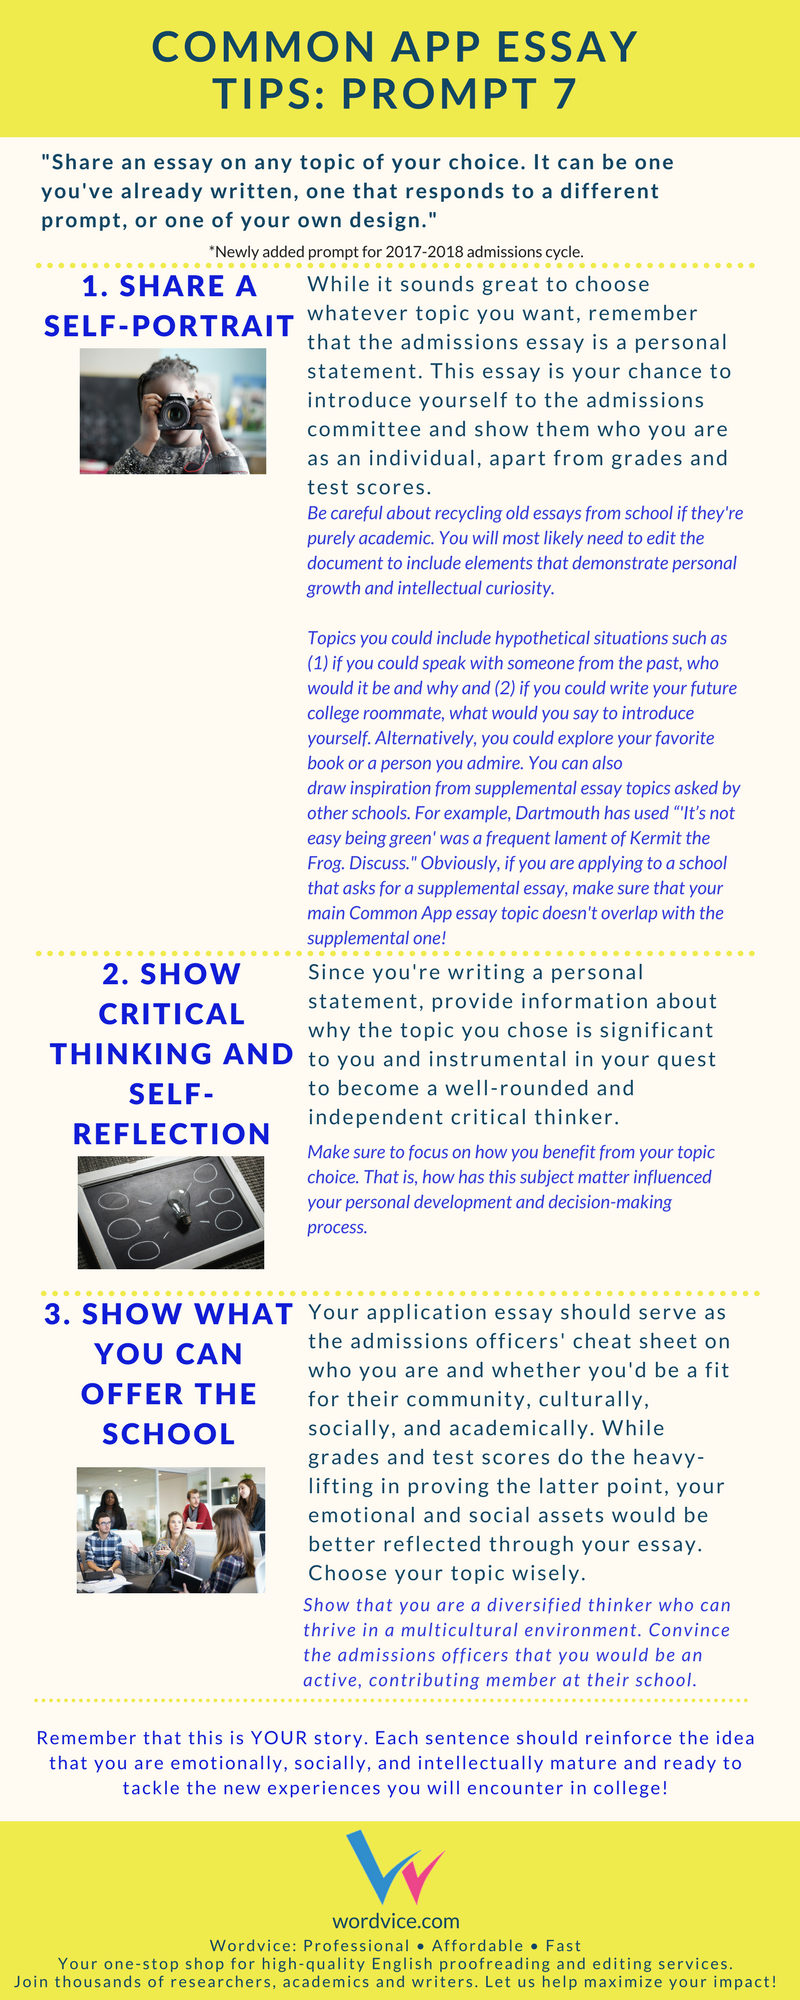 how to choose the best topic for the common app essay prompt  college admissions essay advice how to answer the common app topic of your choice ""